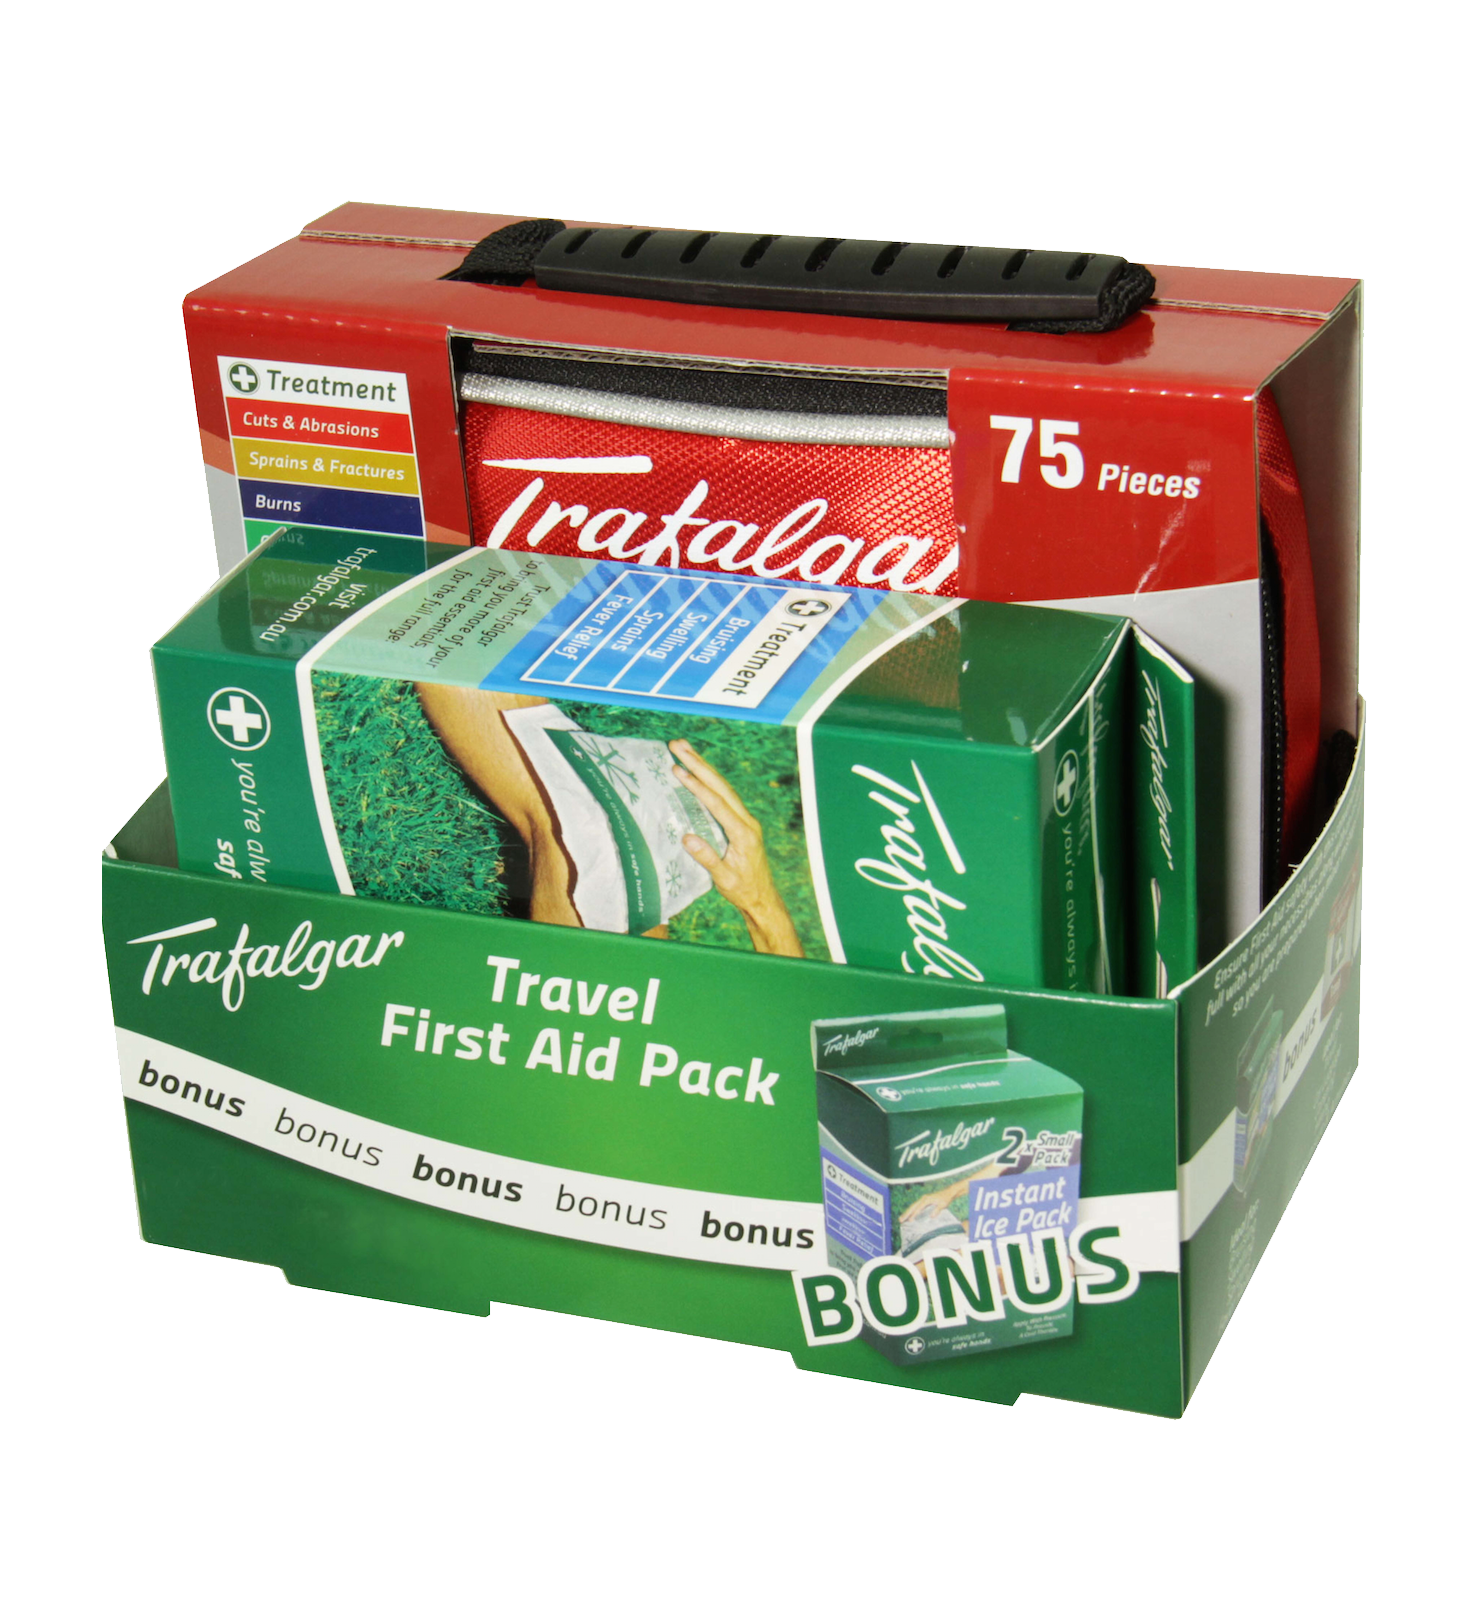 Trafalgar Travel First Aid Kit + FREE Instant Ice Pack